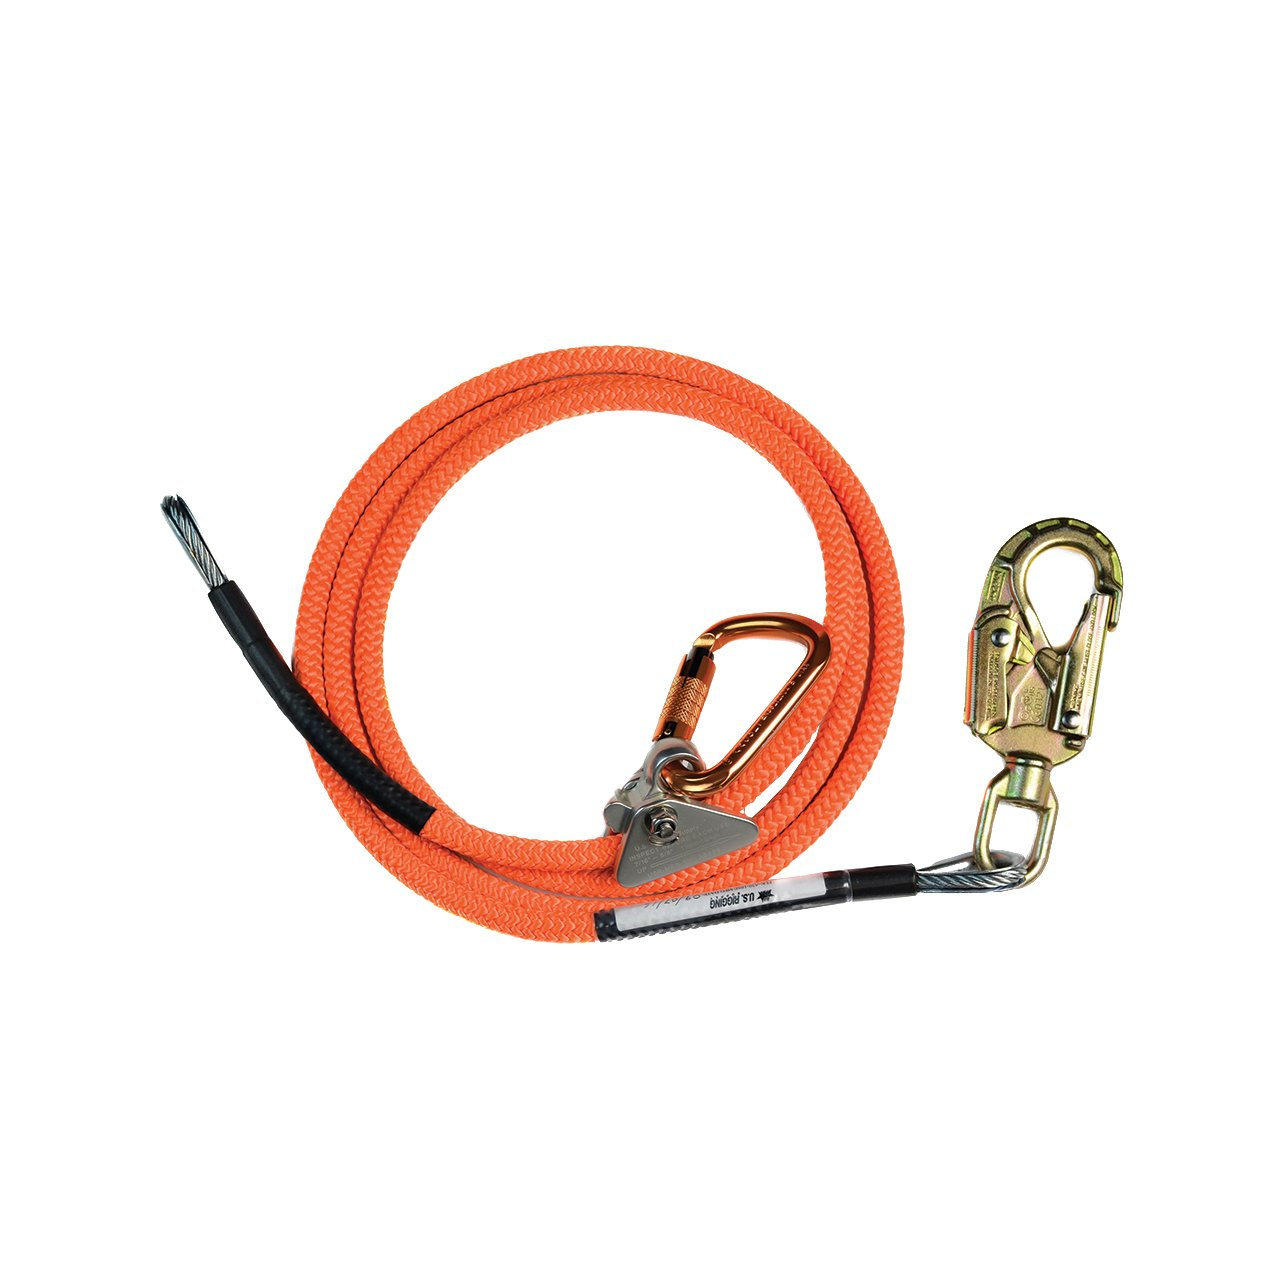 ProClimb Steel Wire Core Flip Line Kit (5/8 in) – Mini Rope Grab Adjuster, Adjustable Rope Lanyard, Low Stretch, Cut Resistant - for Fall Protection, Arborist, Tree Climbers (Orange - 10 feet)